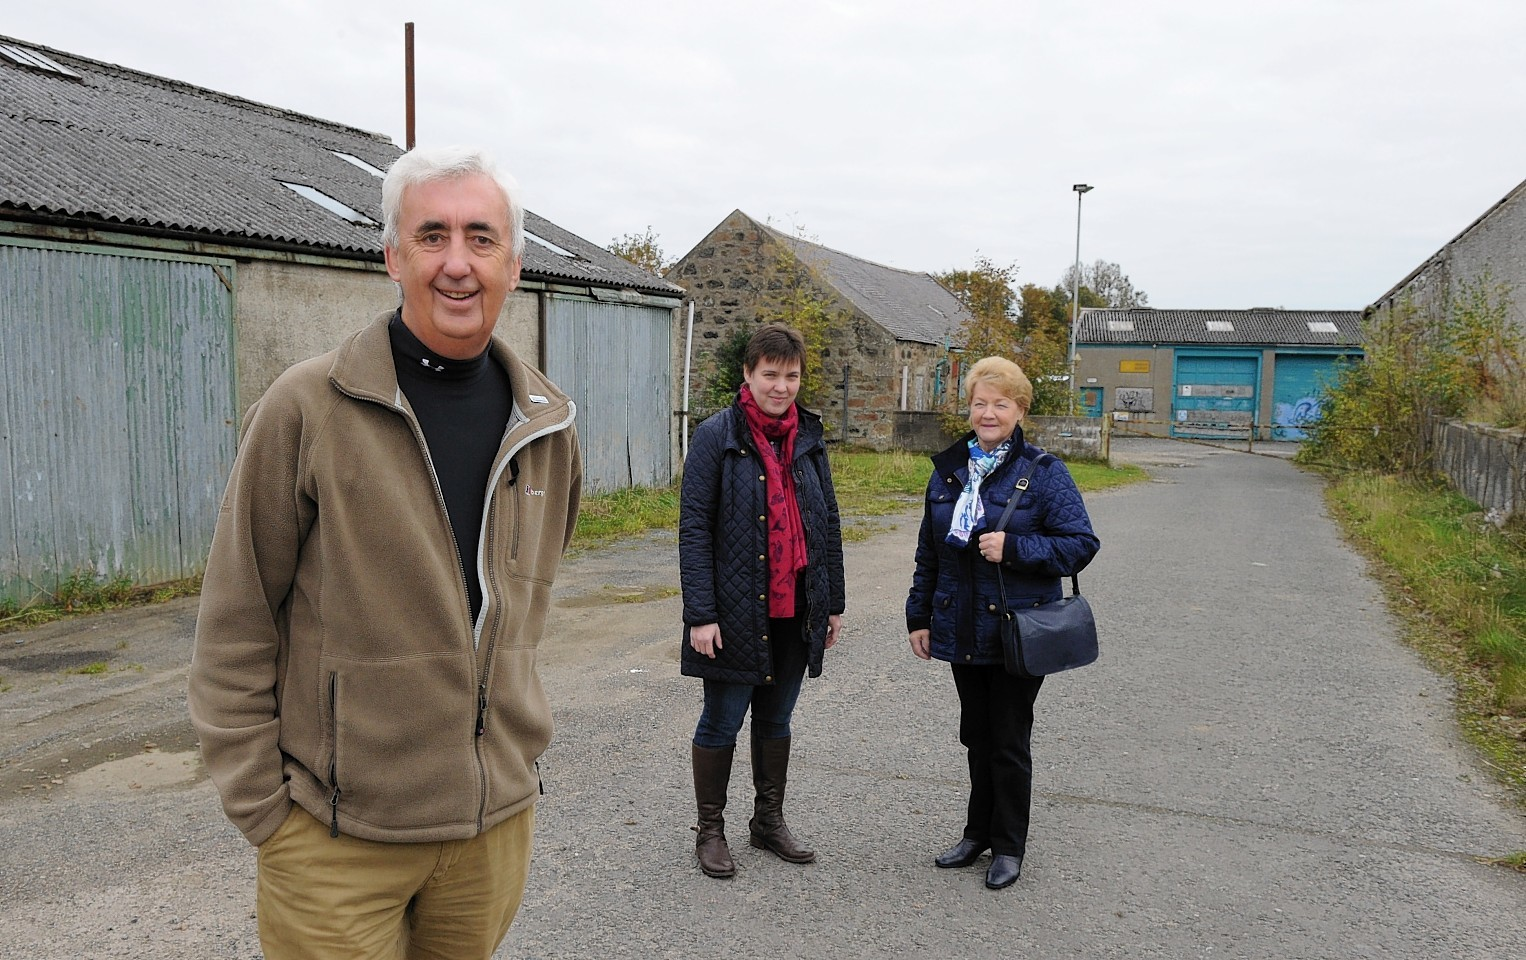 Insch Renewable Energy Consortium have received a £6million boost from the Scottish Government. The money will go towards the replacement of their World War I hospital.